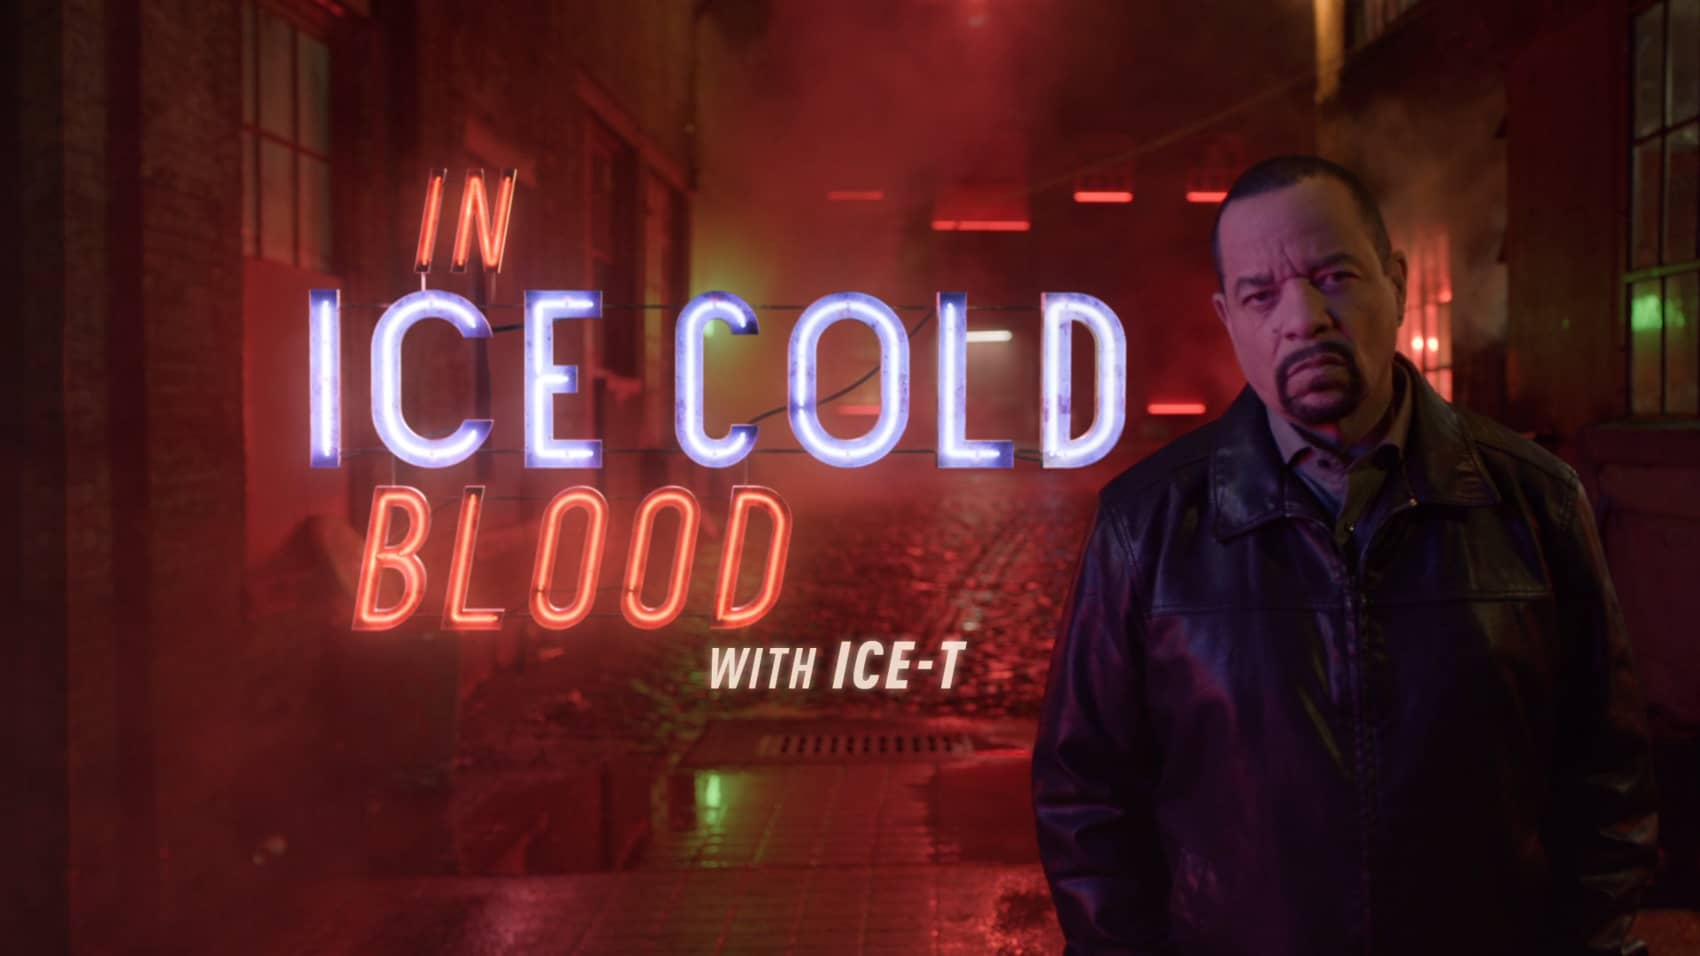 In Ice Cold Blood with Ice-T